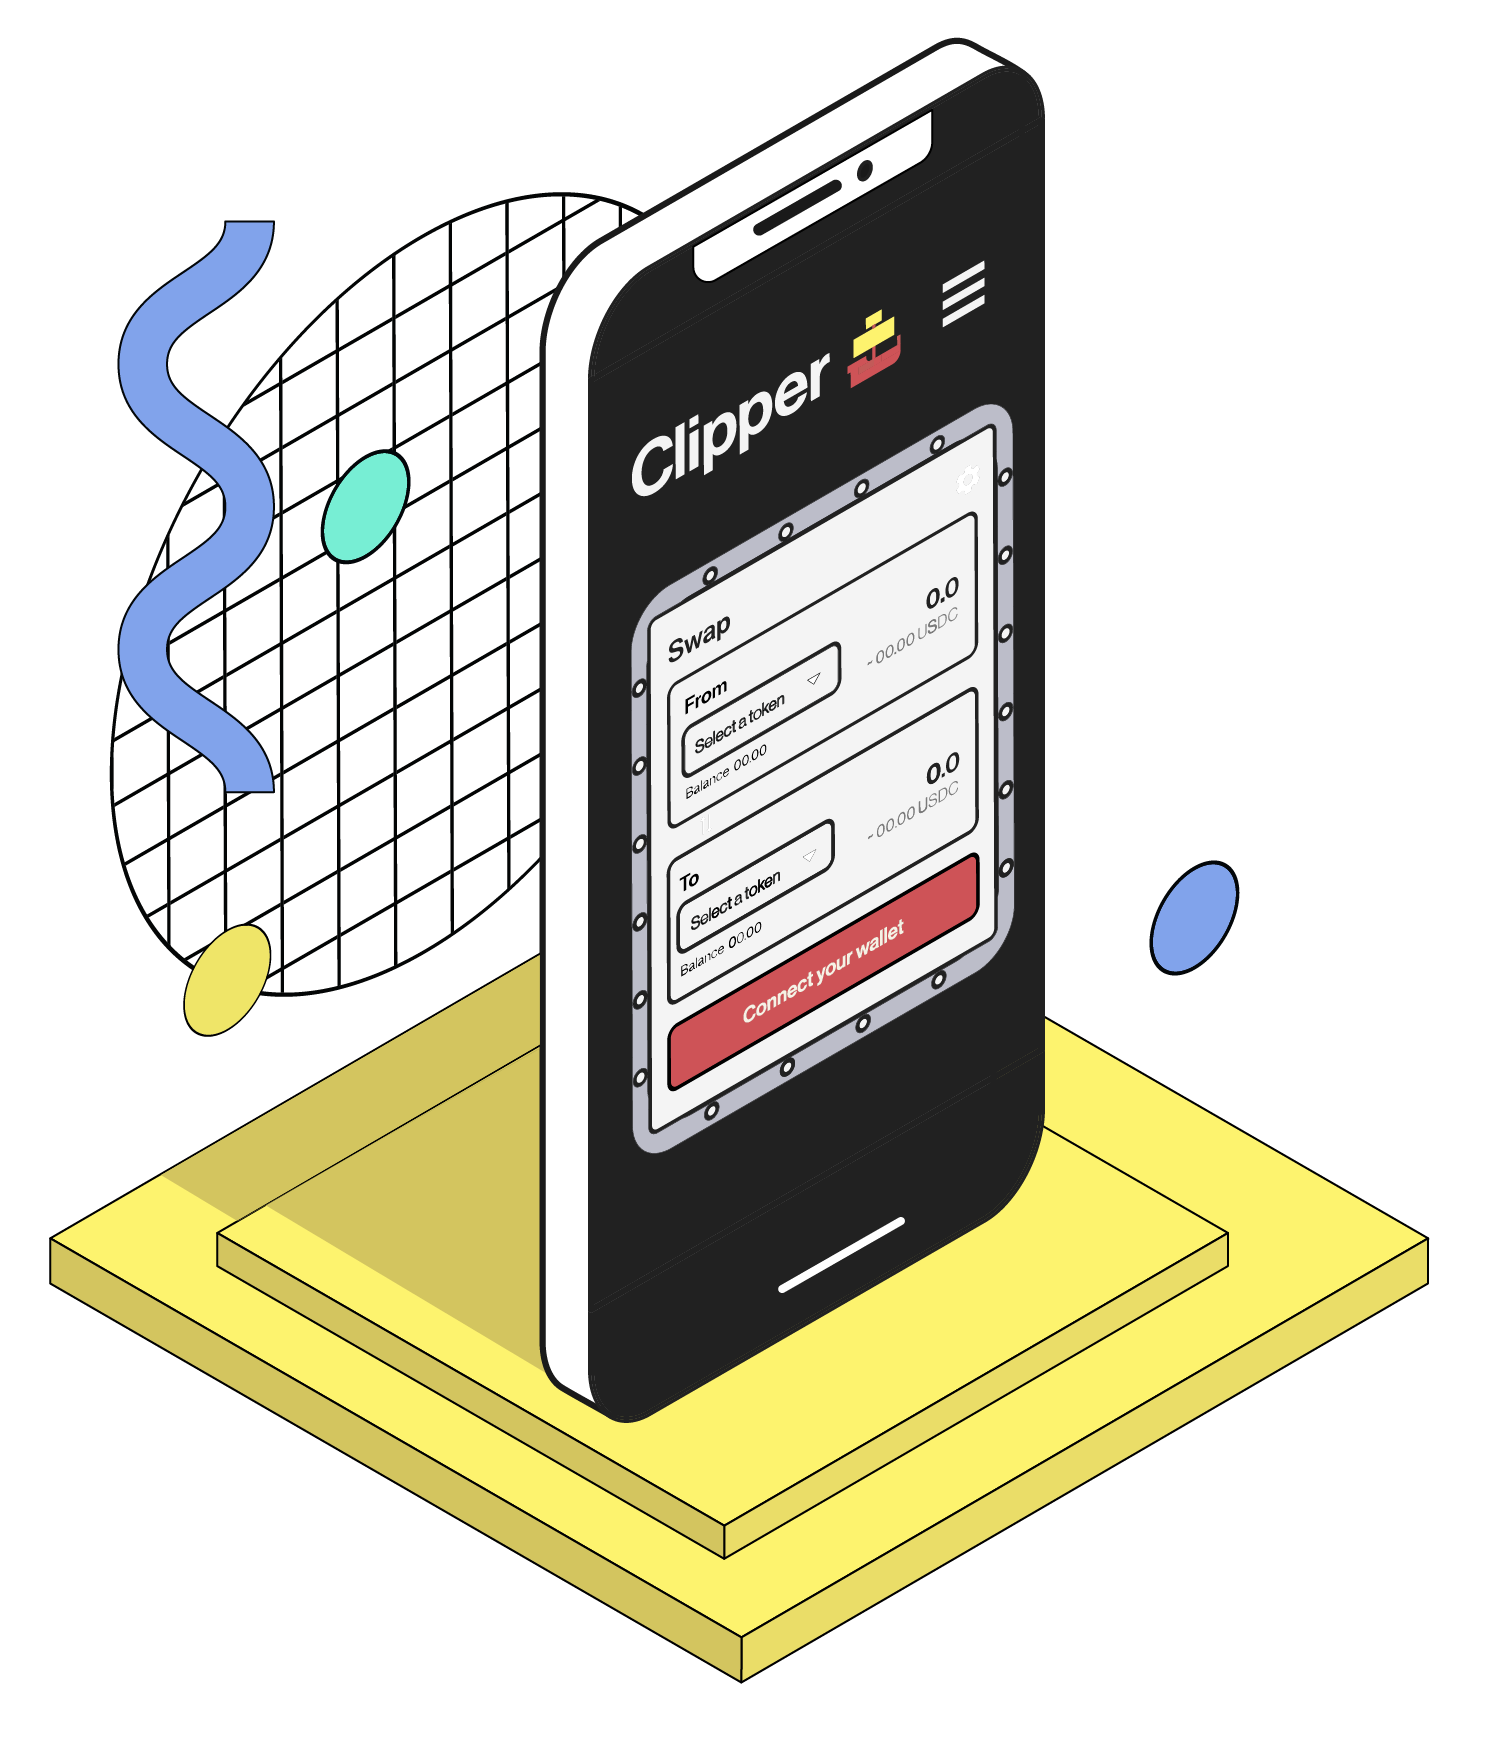 The clipper app opened on a cell phone